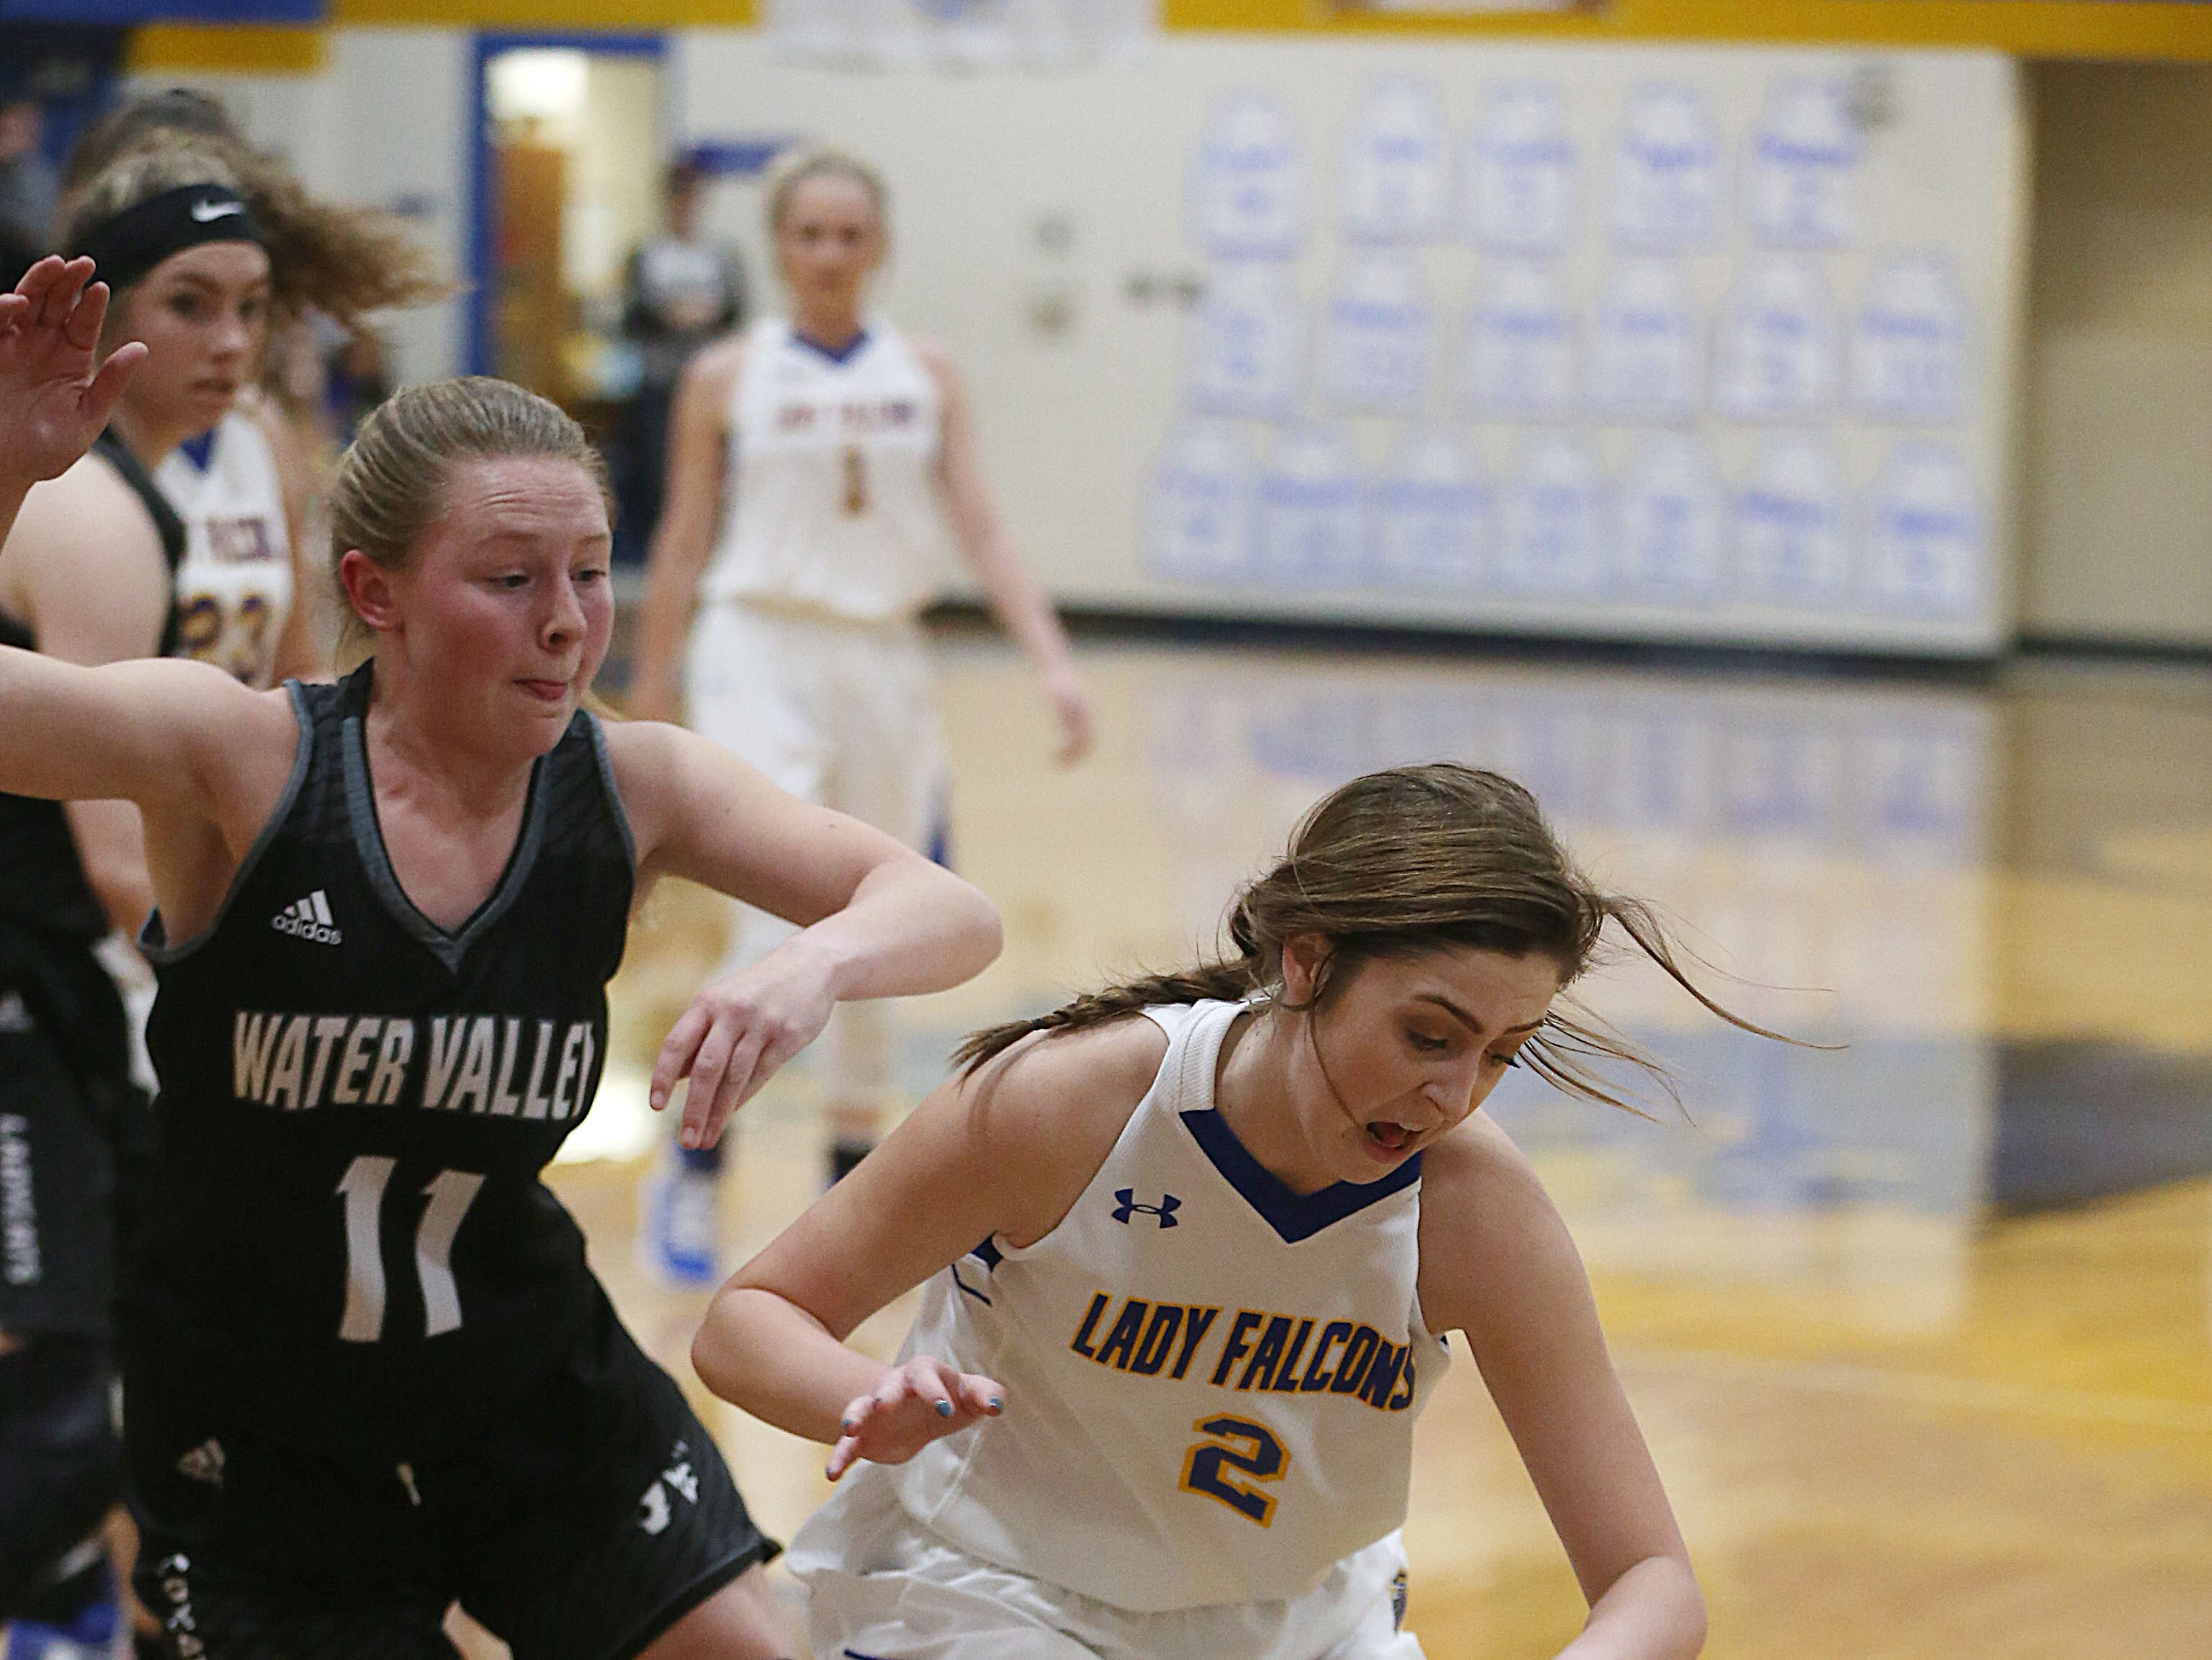 Veribest's Zoe Bratcher (#2) tries to escape from Water Valley's Shelby Kolhs (#11) Tuesday, Jan. 8, 2019 during their game in Veribest.